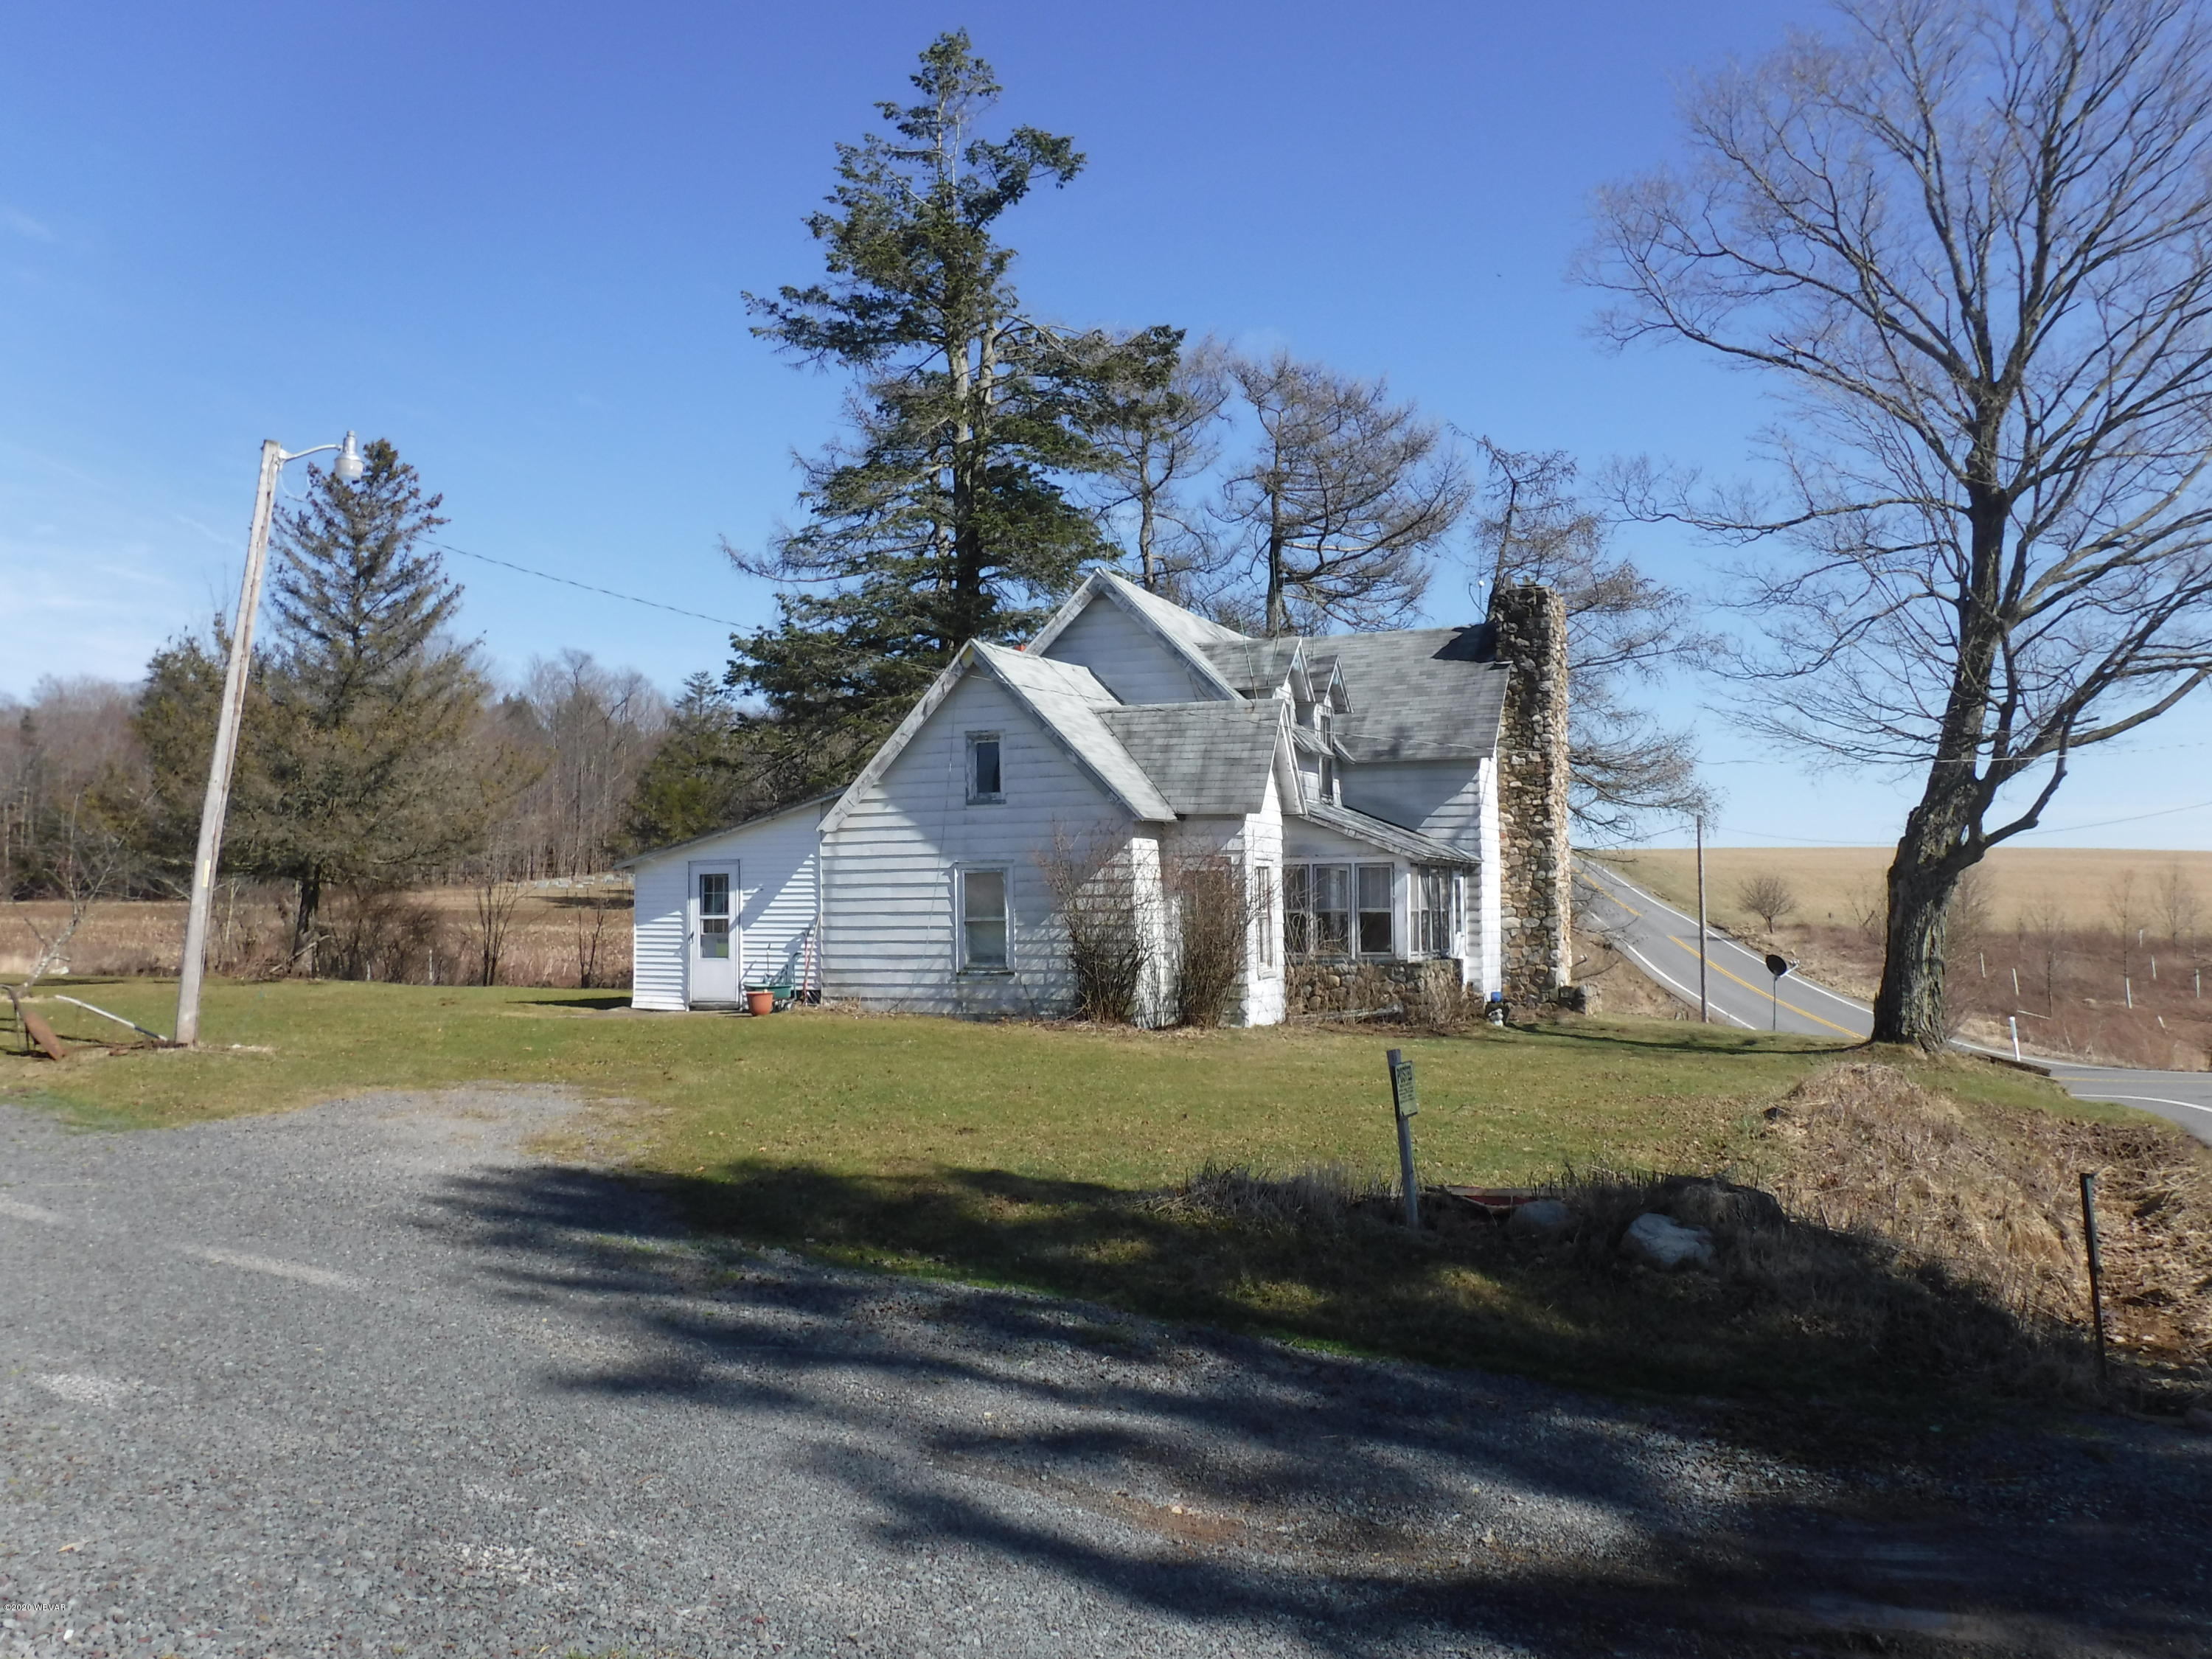 8738 PA-154 HIGHWAY, Shunk, PA 17768, 4 Bedrooms Bedrooms, ,1 BathroomBathrooms,Residential,For sale,PA-154,WB-89397